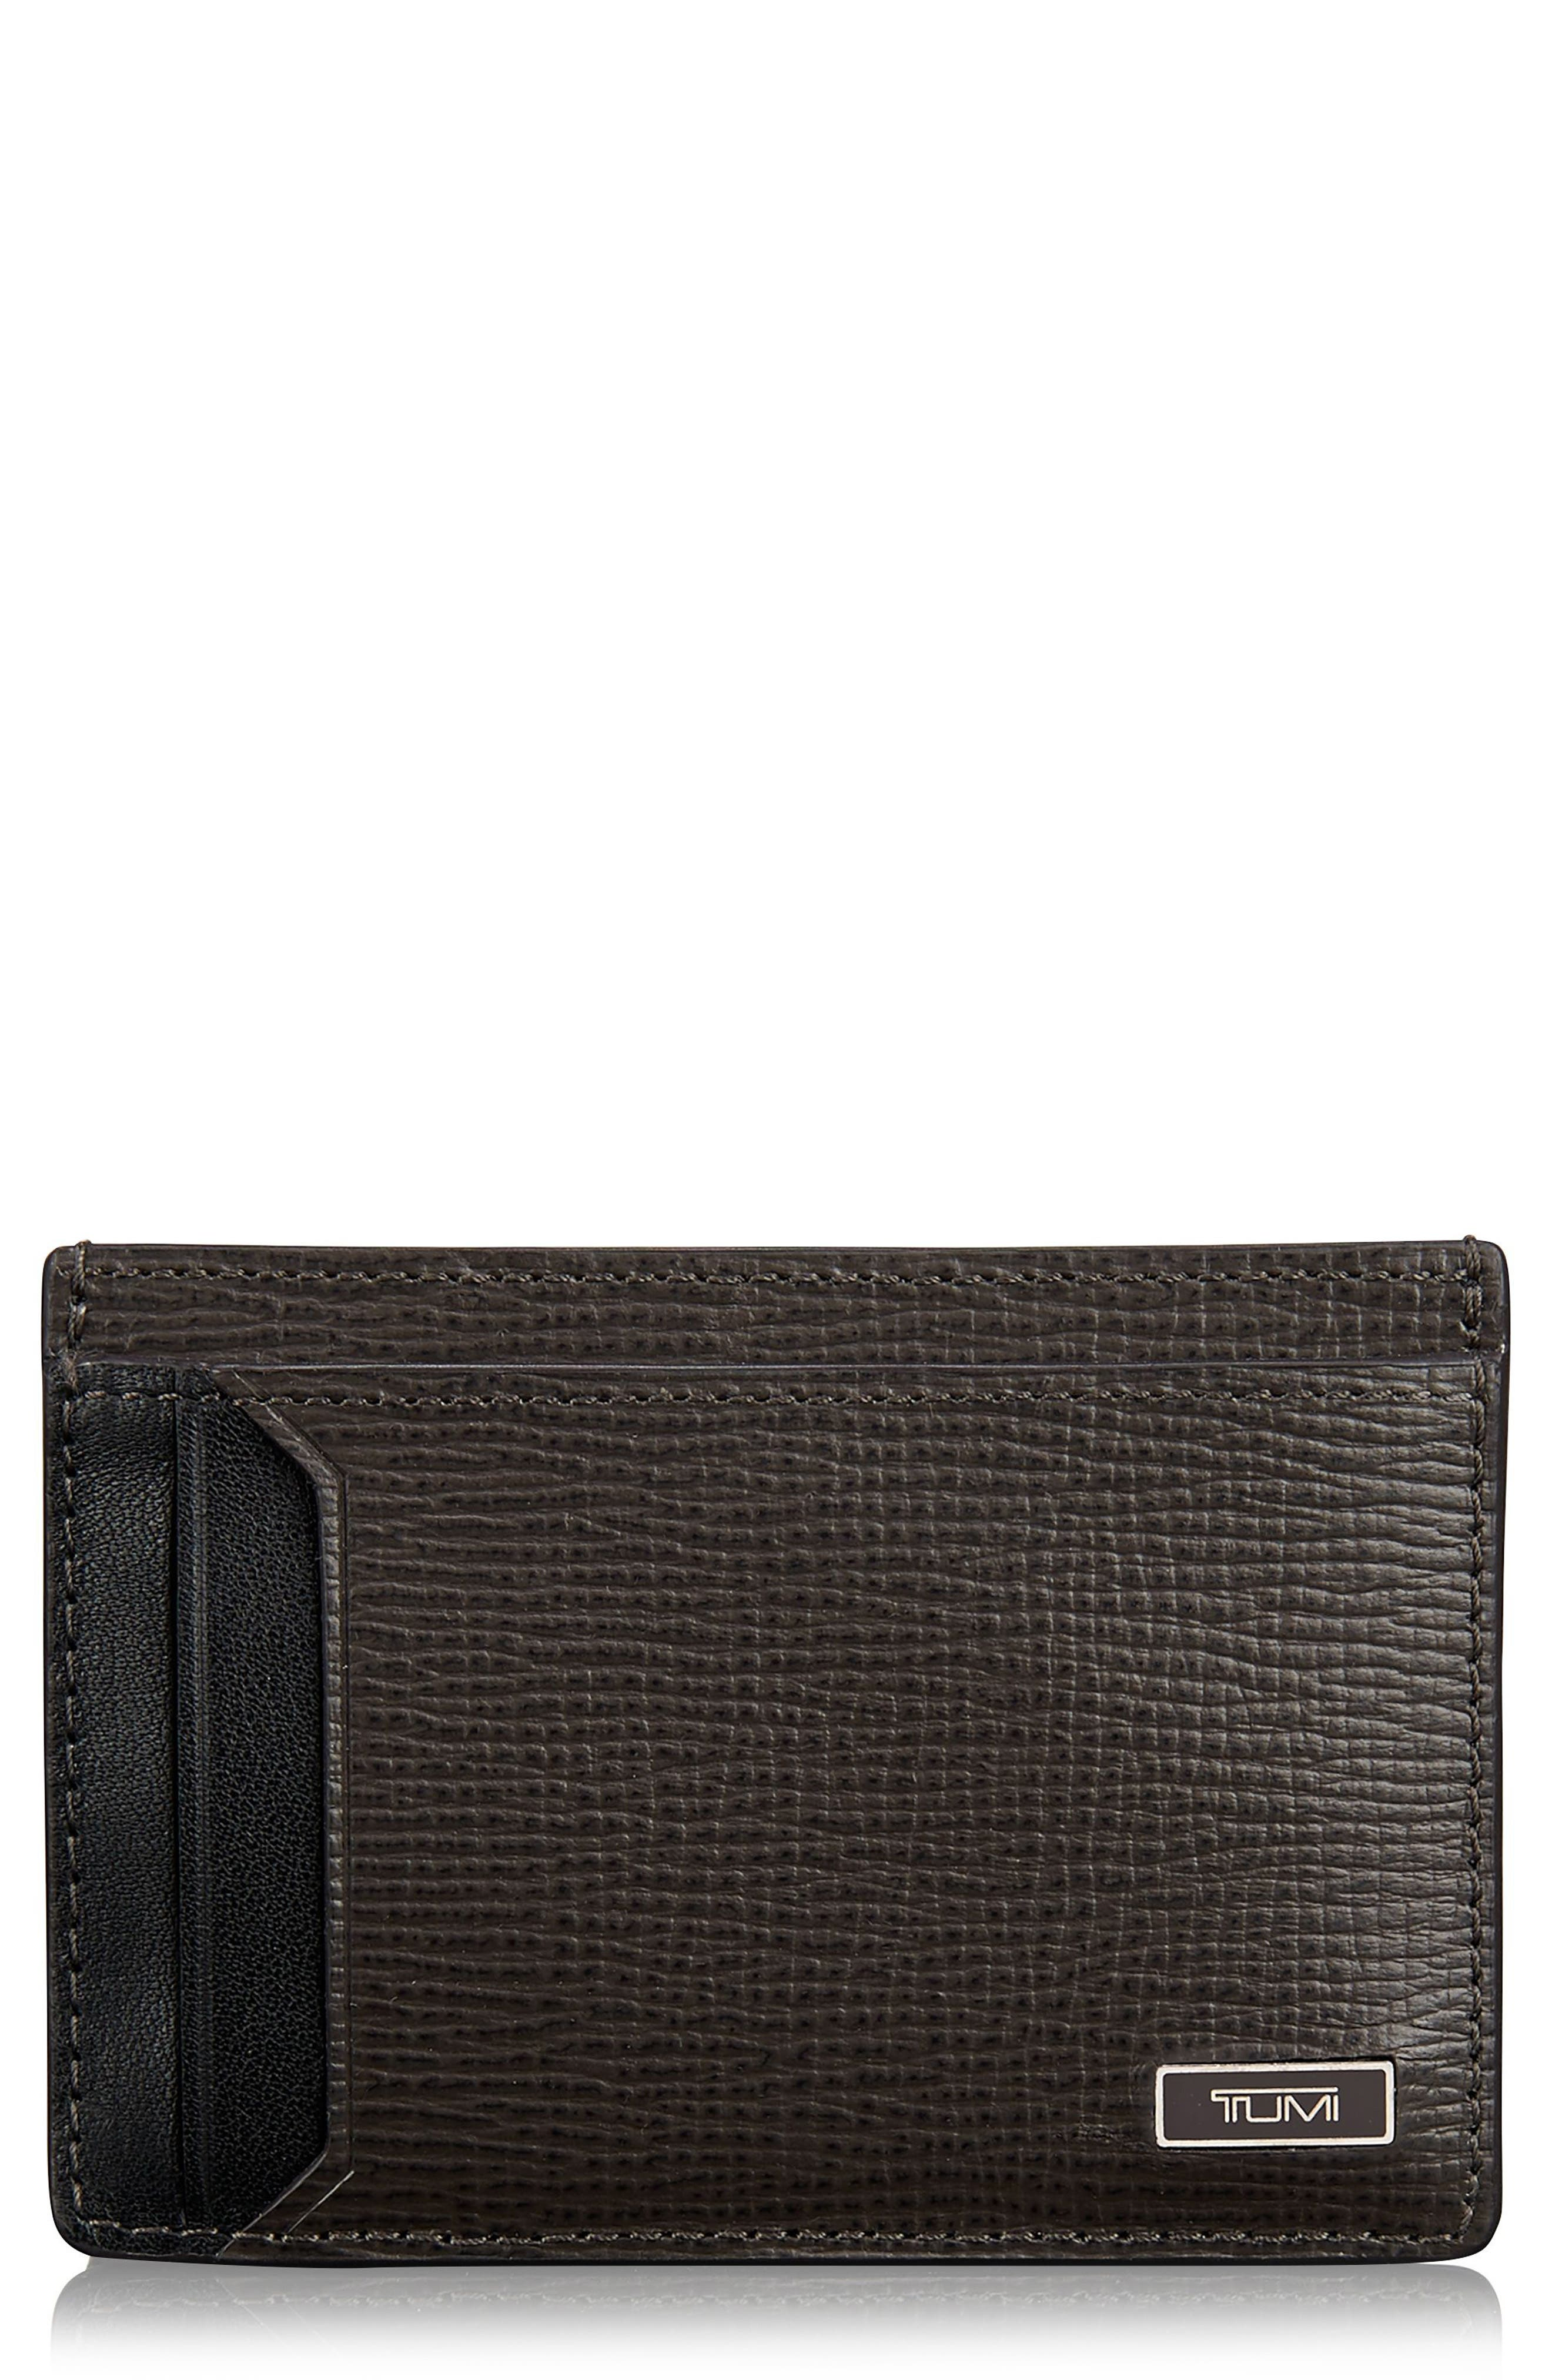 Tumi Monaco Leather Money Clip Card Case